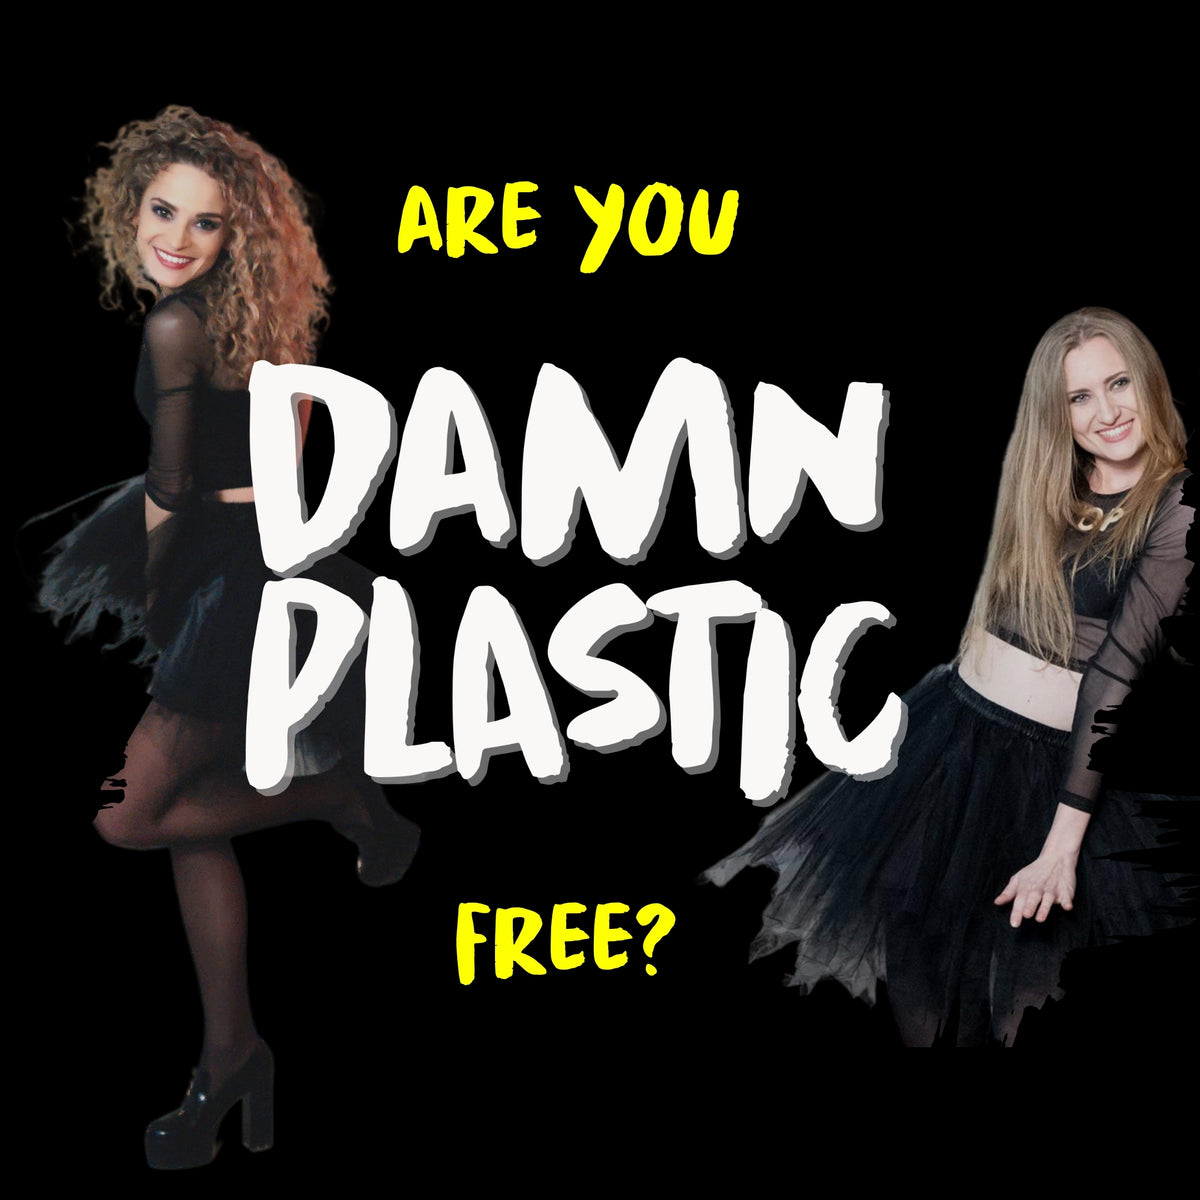 Damnplastic damn plastic zerowaste zero waste online shop how to nachhaltig leben sustainable austria salzburg green packaging event management